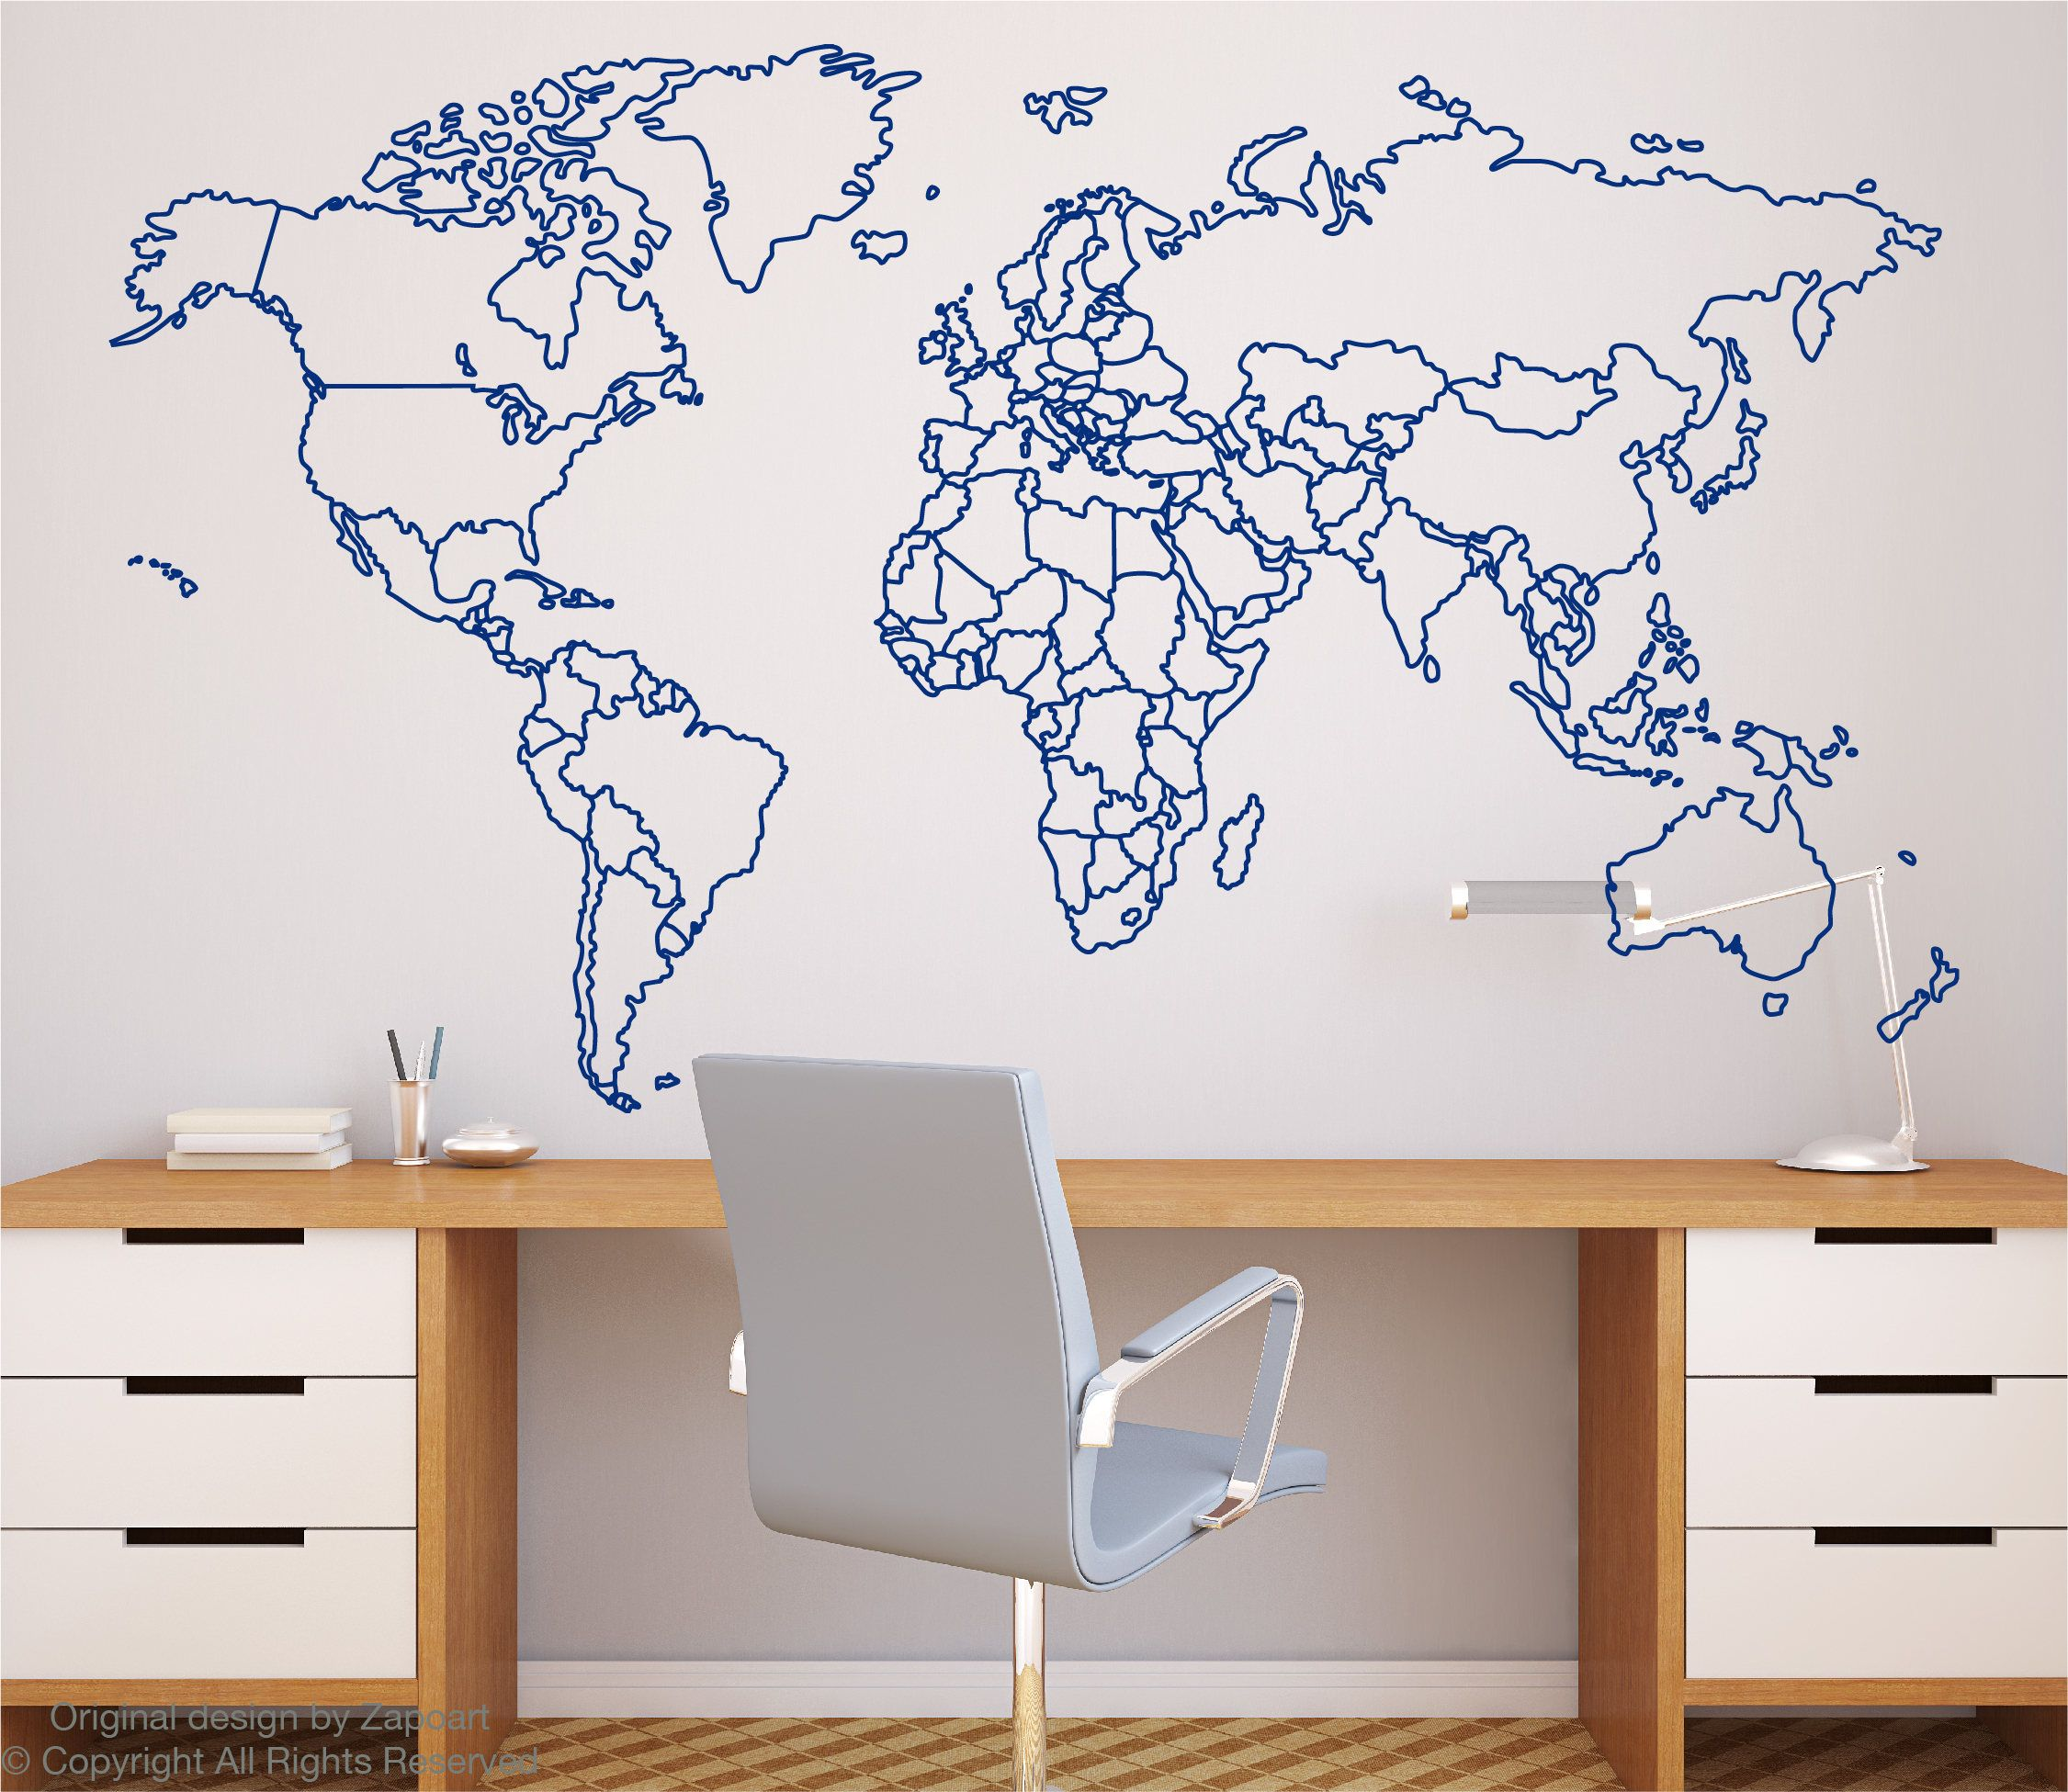 World map with countries borders outline wall decal by zapoart on world map with countries borders outline wall decal by zapoart on etsy gumiabroncs Image collections